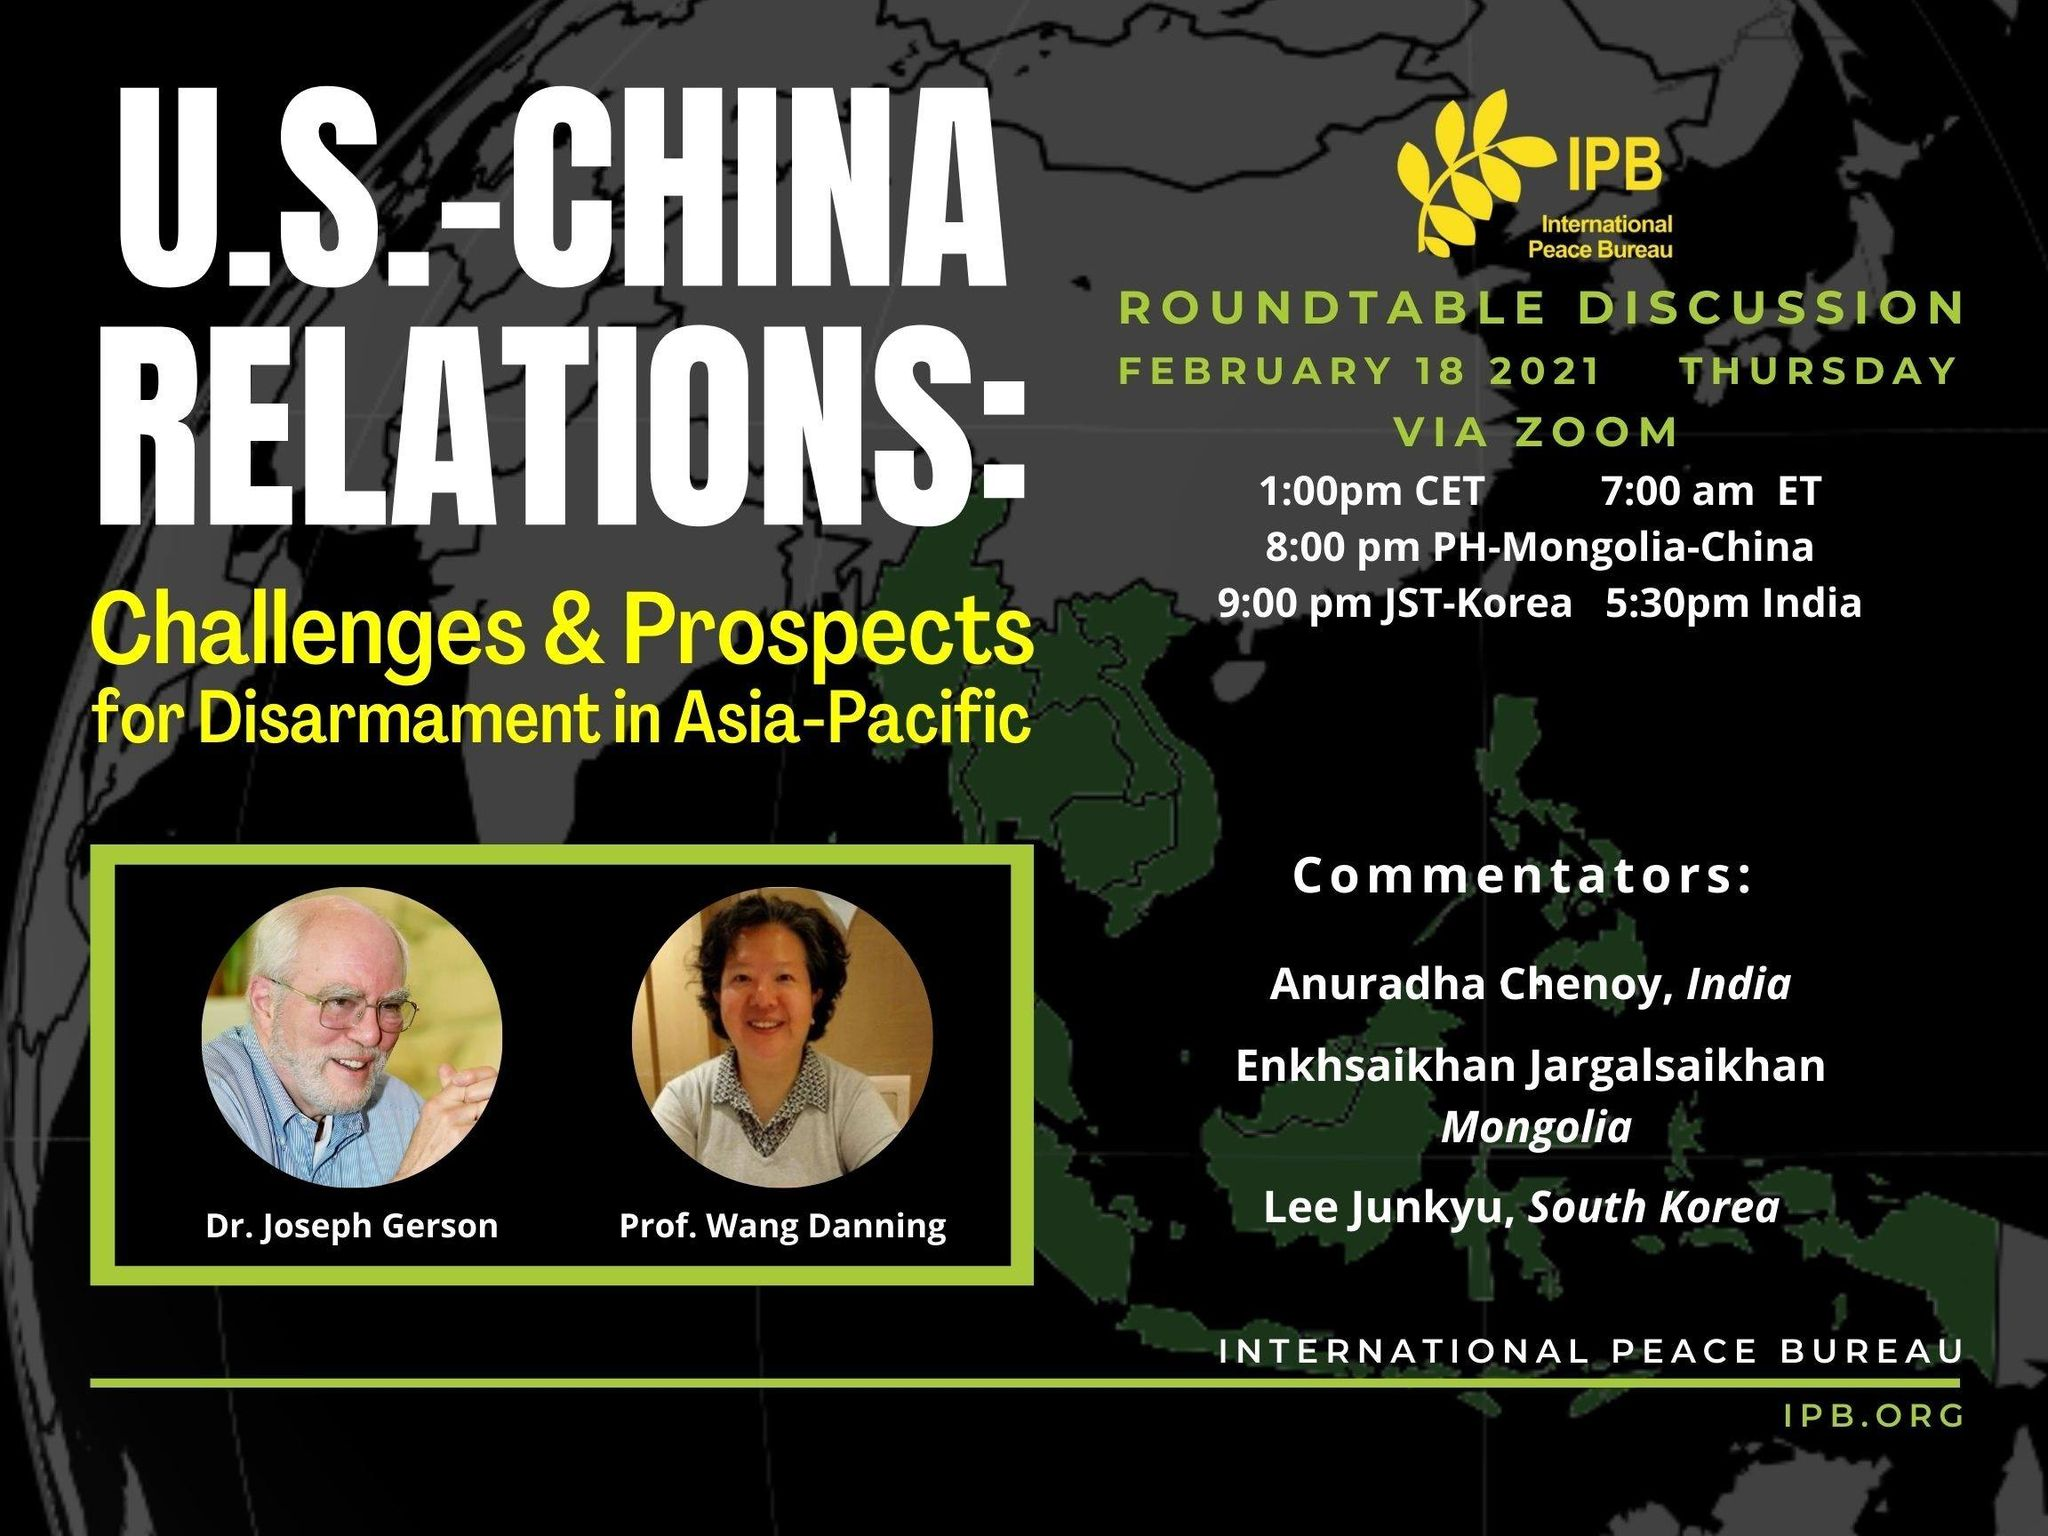 US-China Relations: Challenges & Prospects for Disarmament in Asia-Pacific